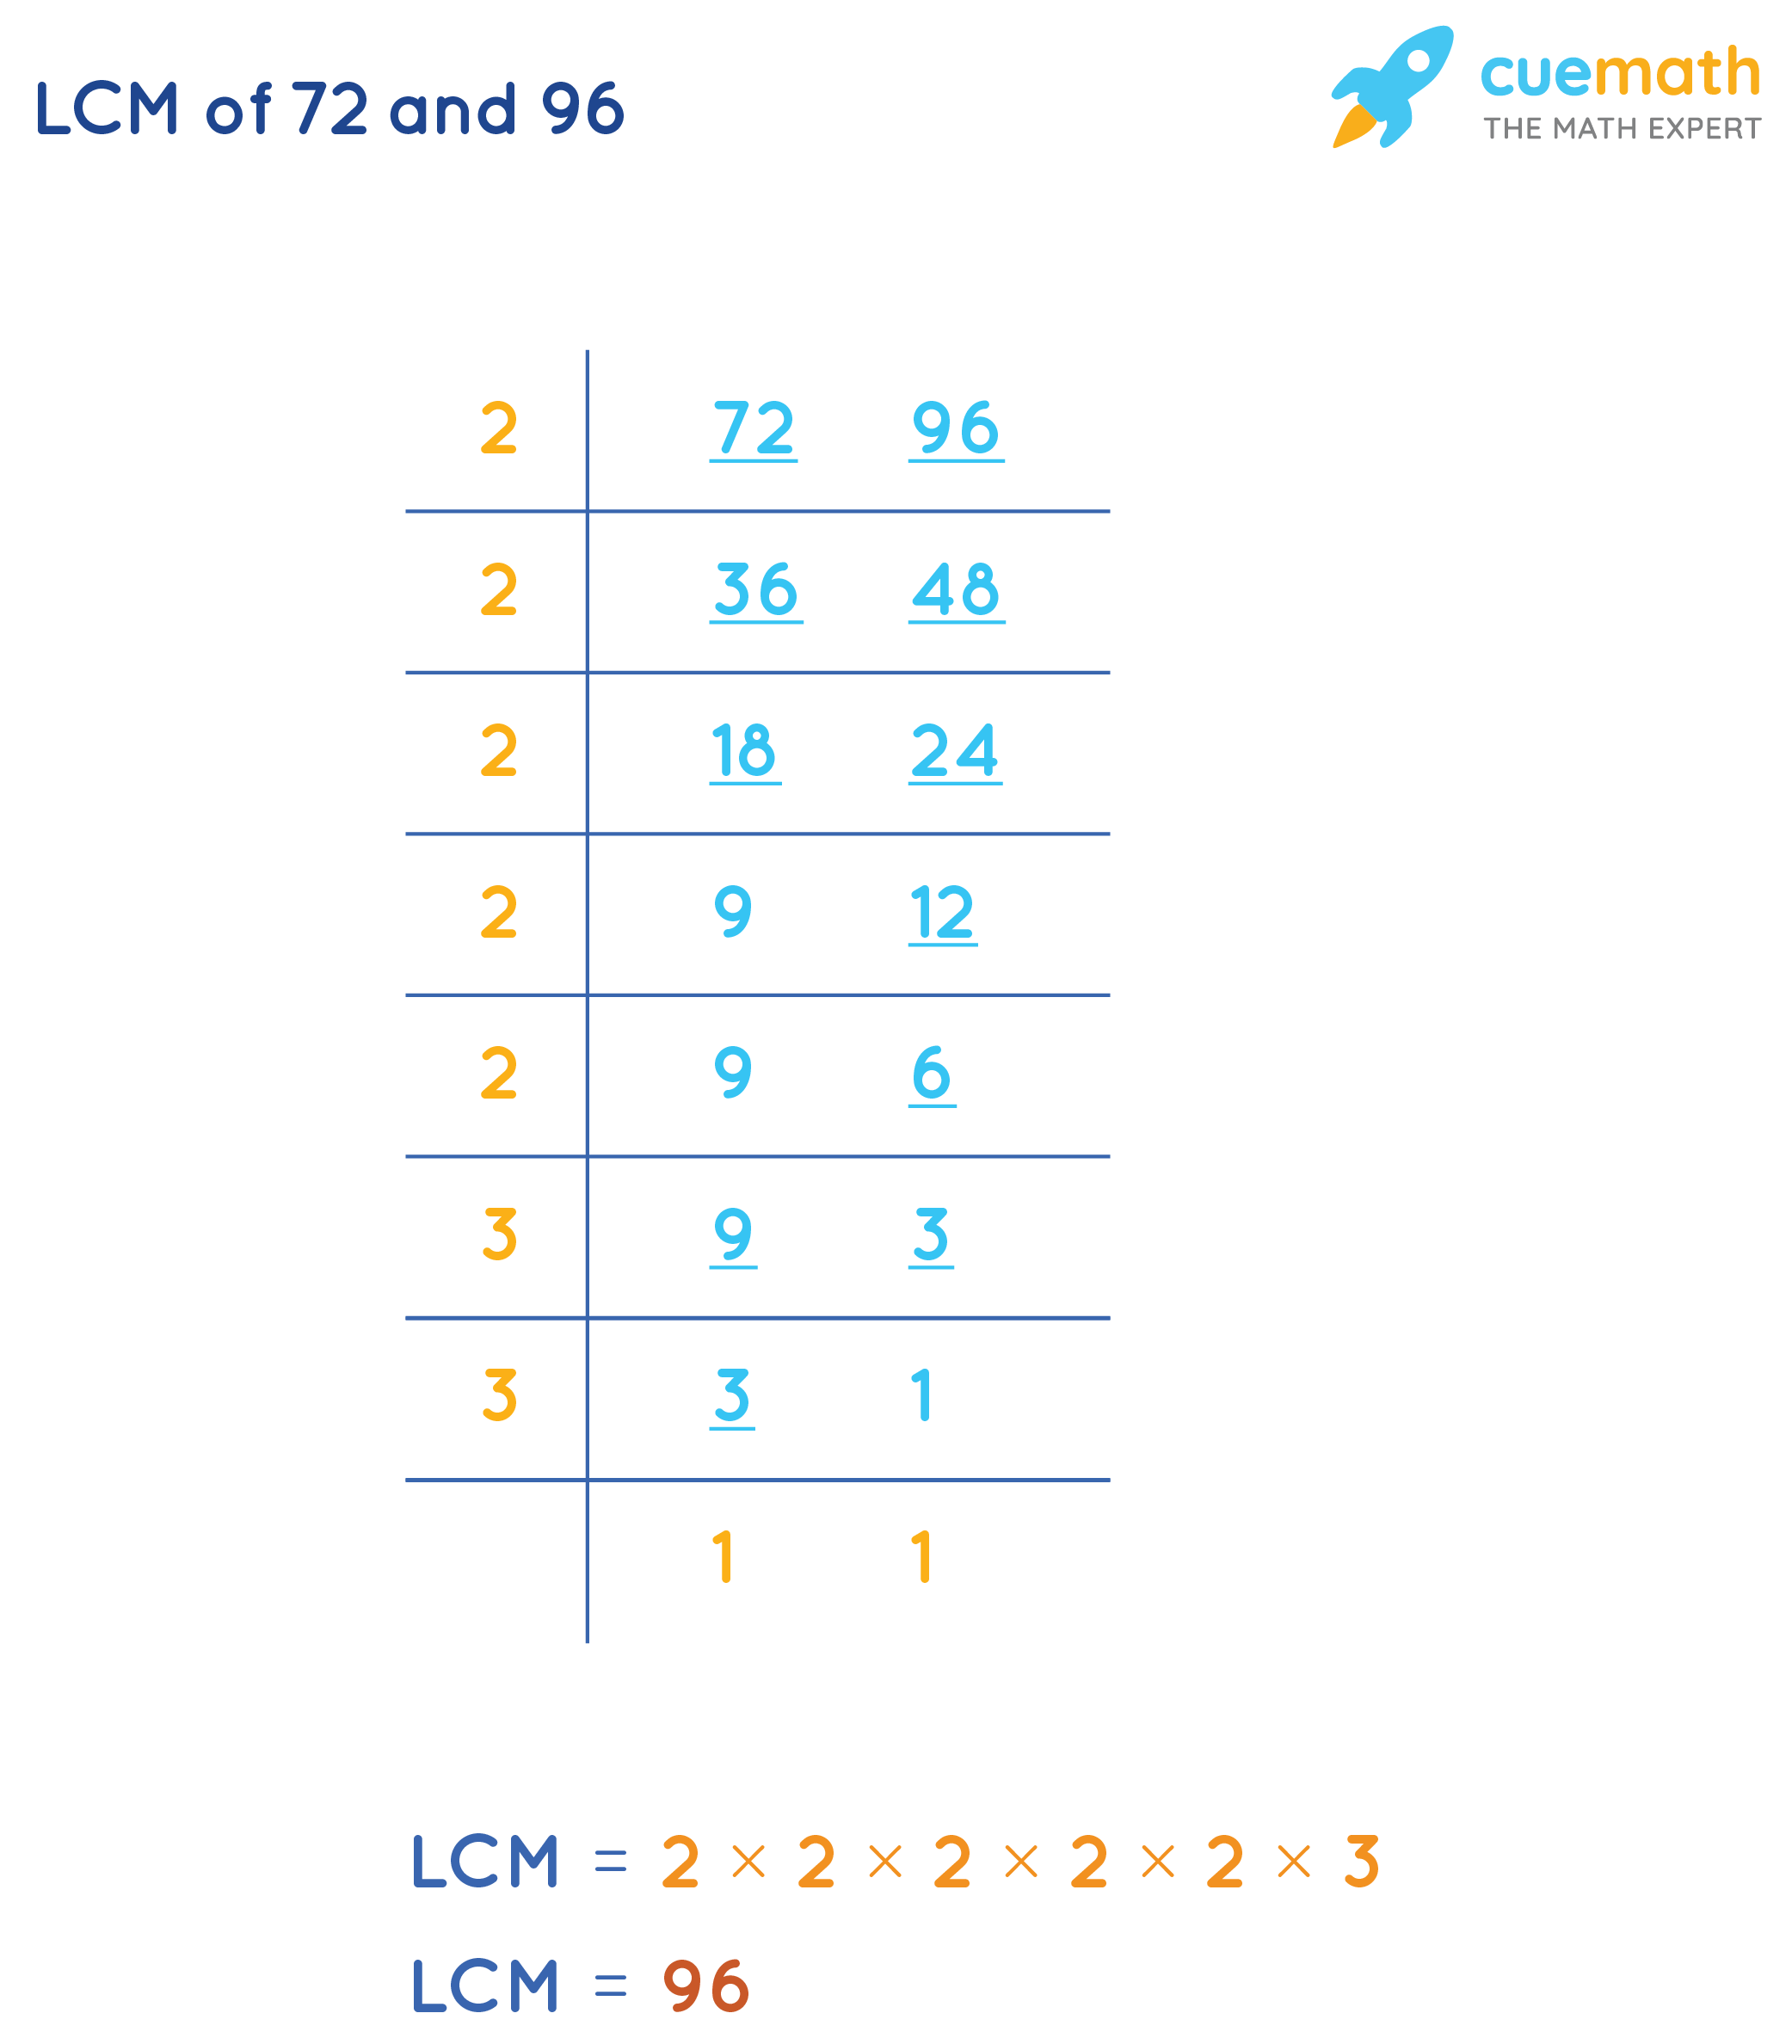 Common Division Method OfFinding LCM(72, 96)